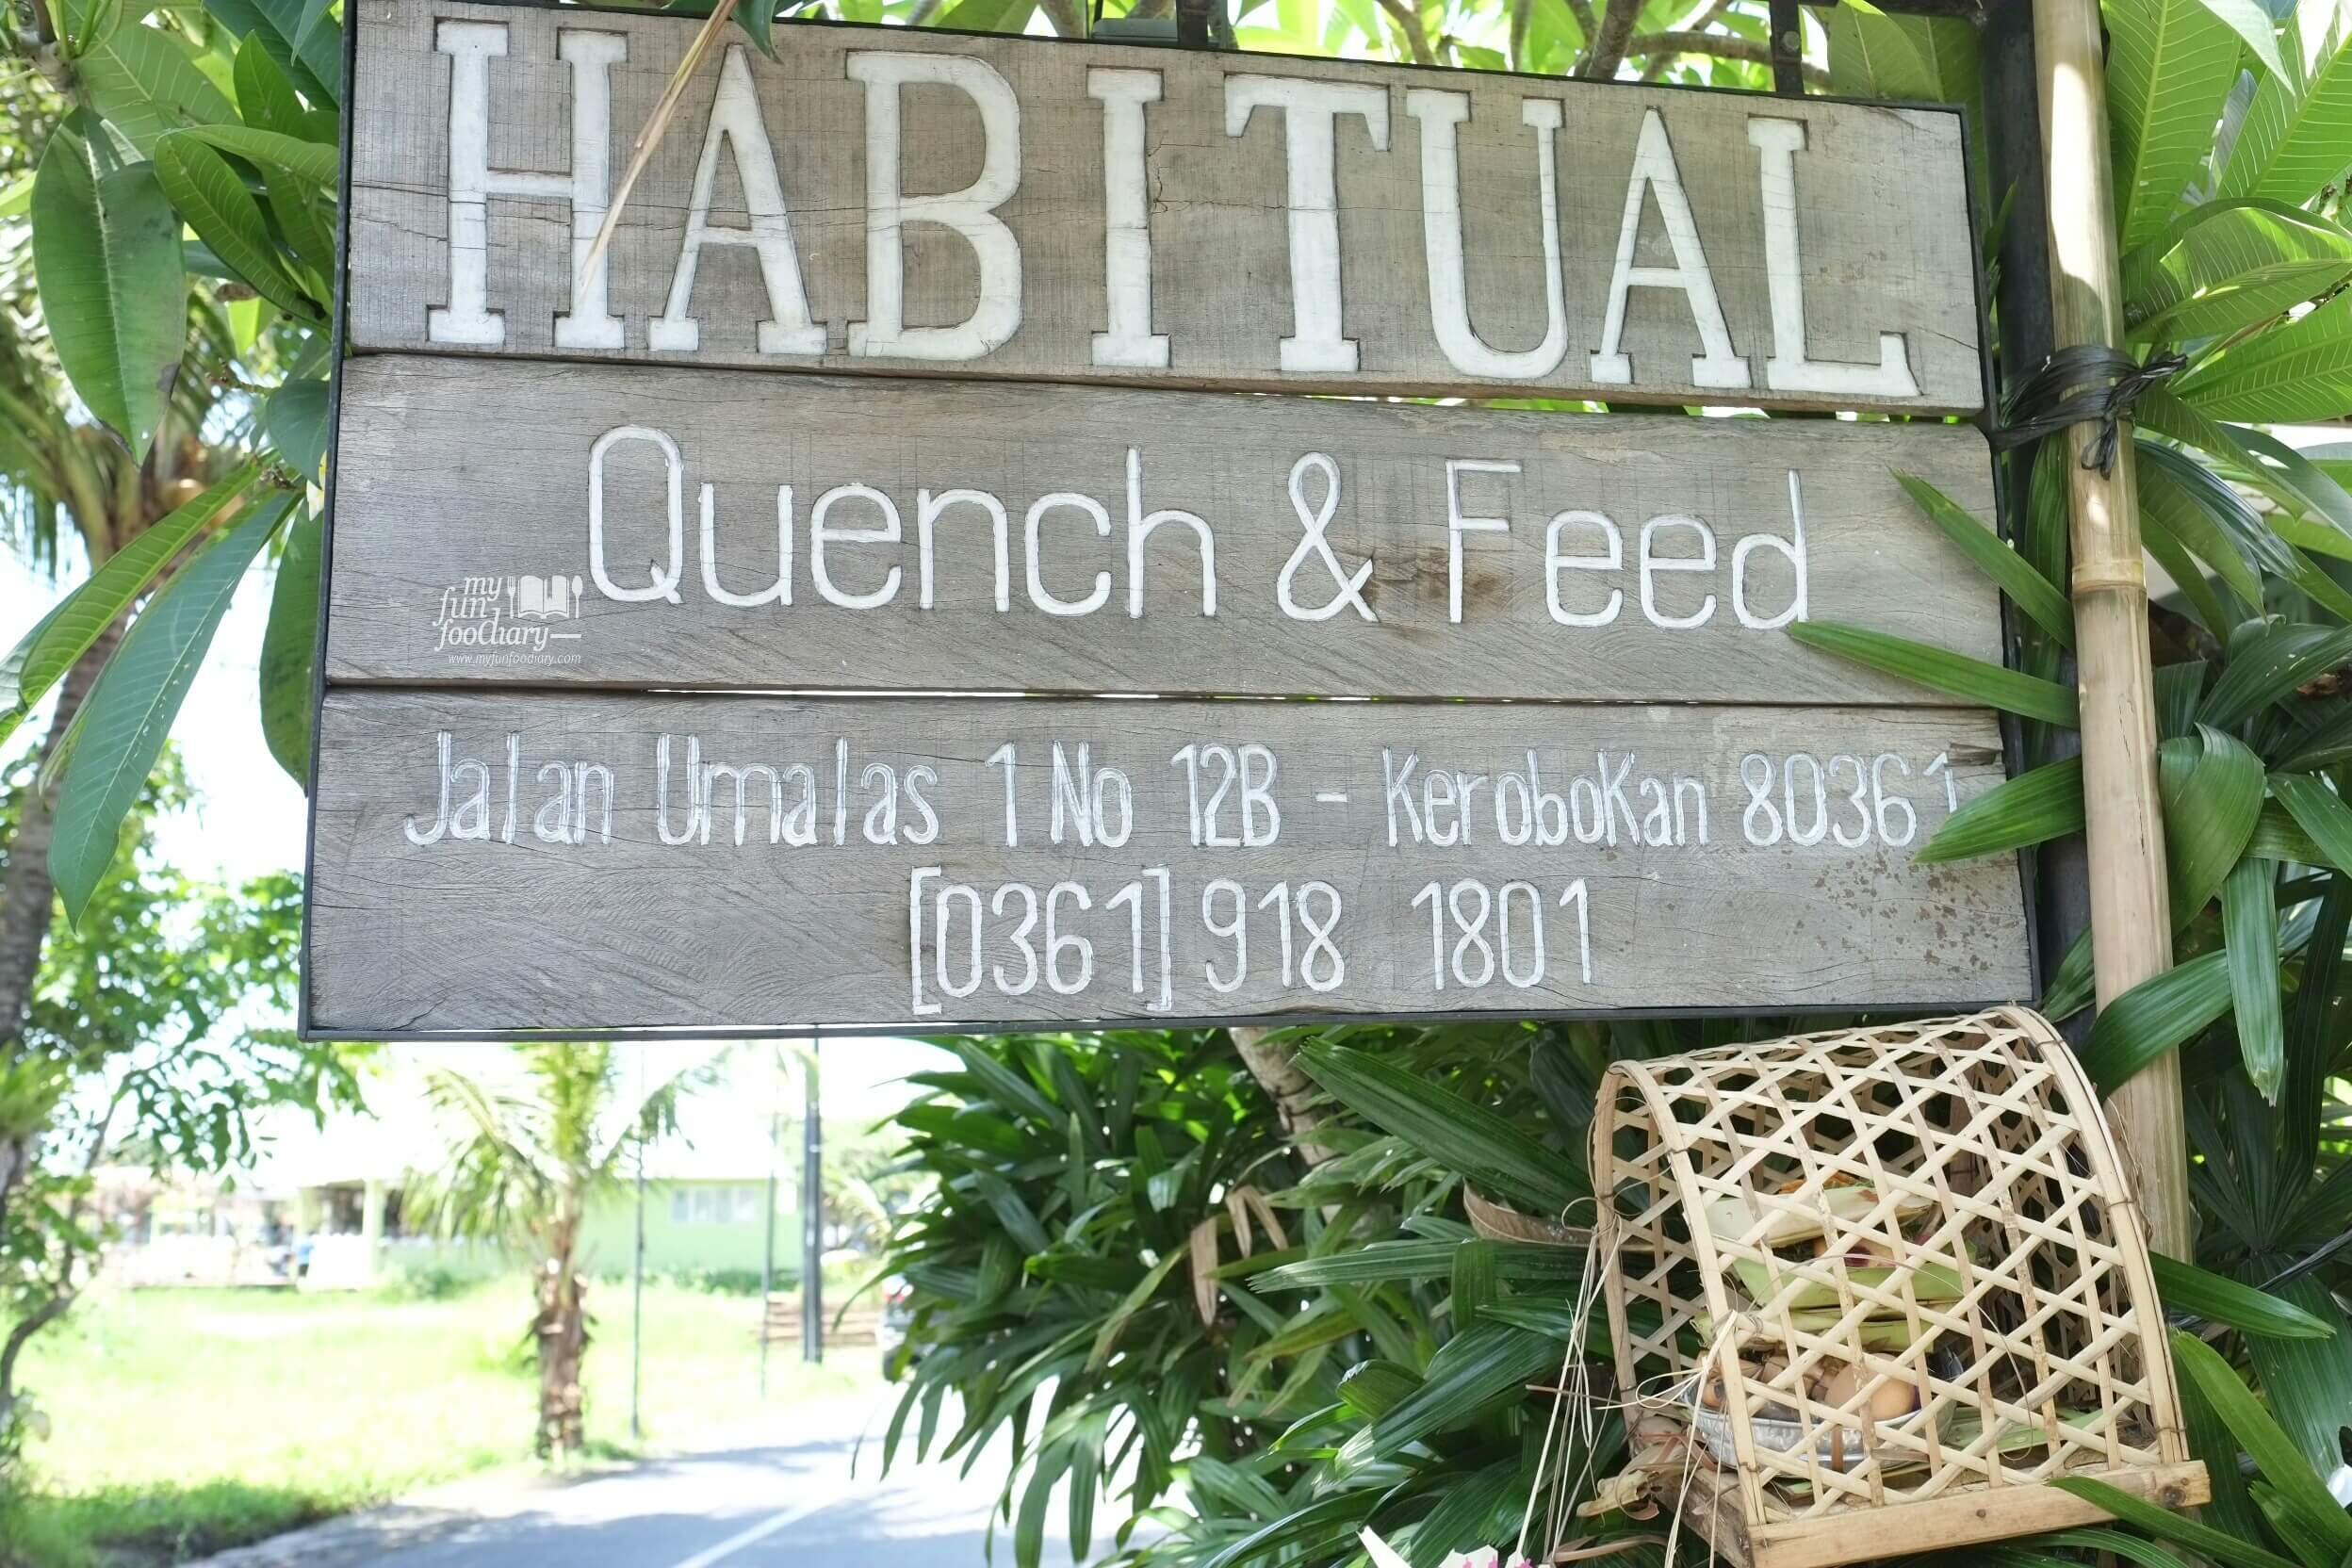 Habitual Quench & Feed